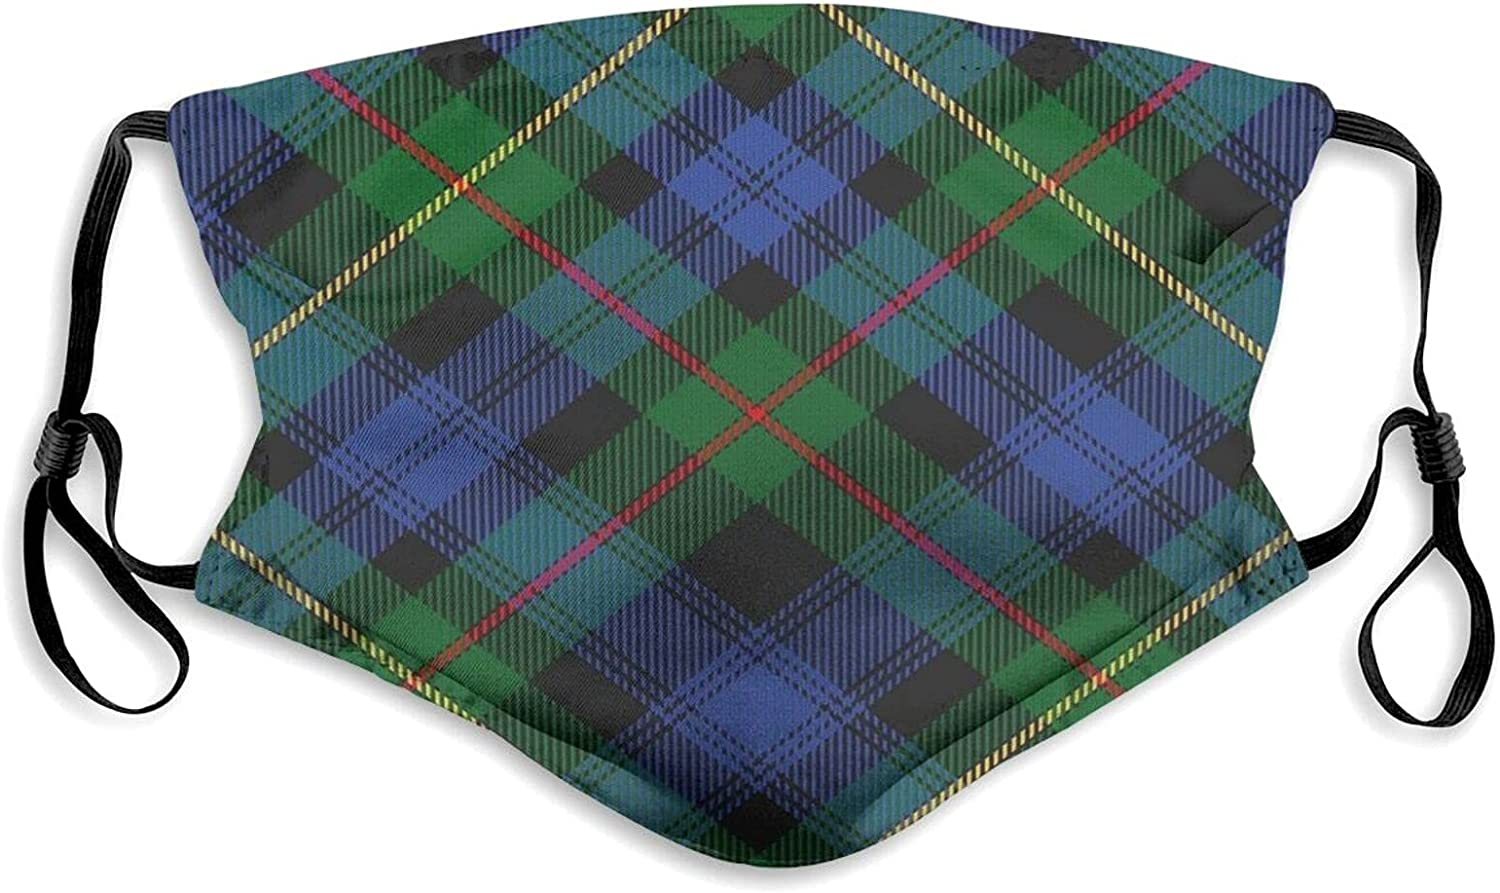 Scottish Clan Macewen McEwen Tartan Cloth face mask with Filter Pocket Washable Face Bandanas Balaclava Dust-Proof Print Reusable Fabric Protection with 2 Pcs Filters